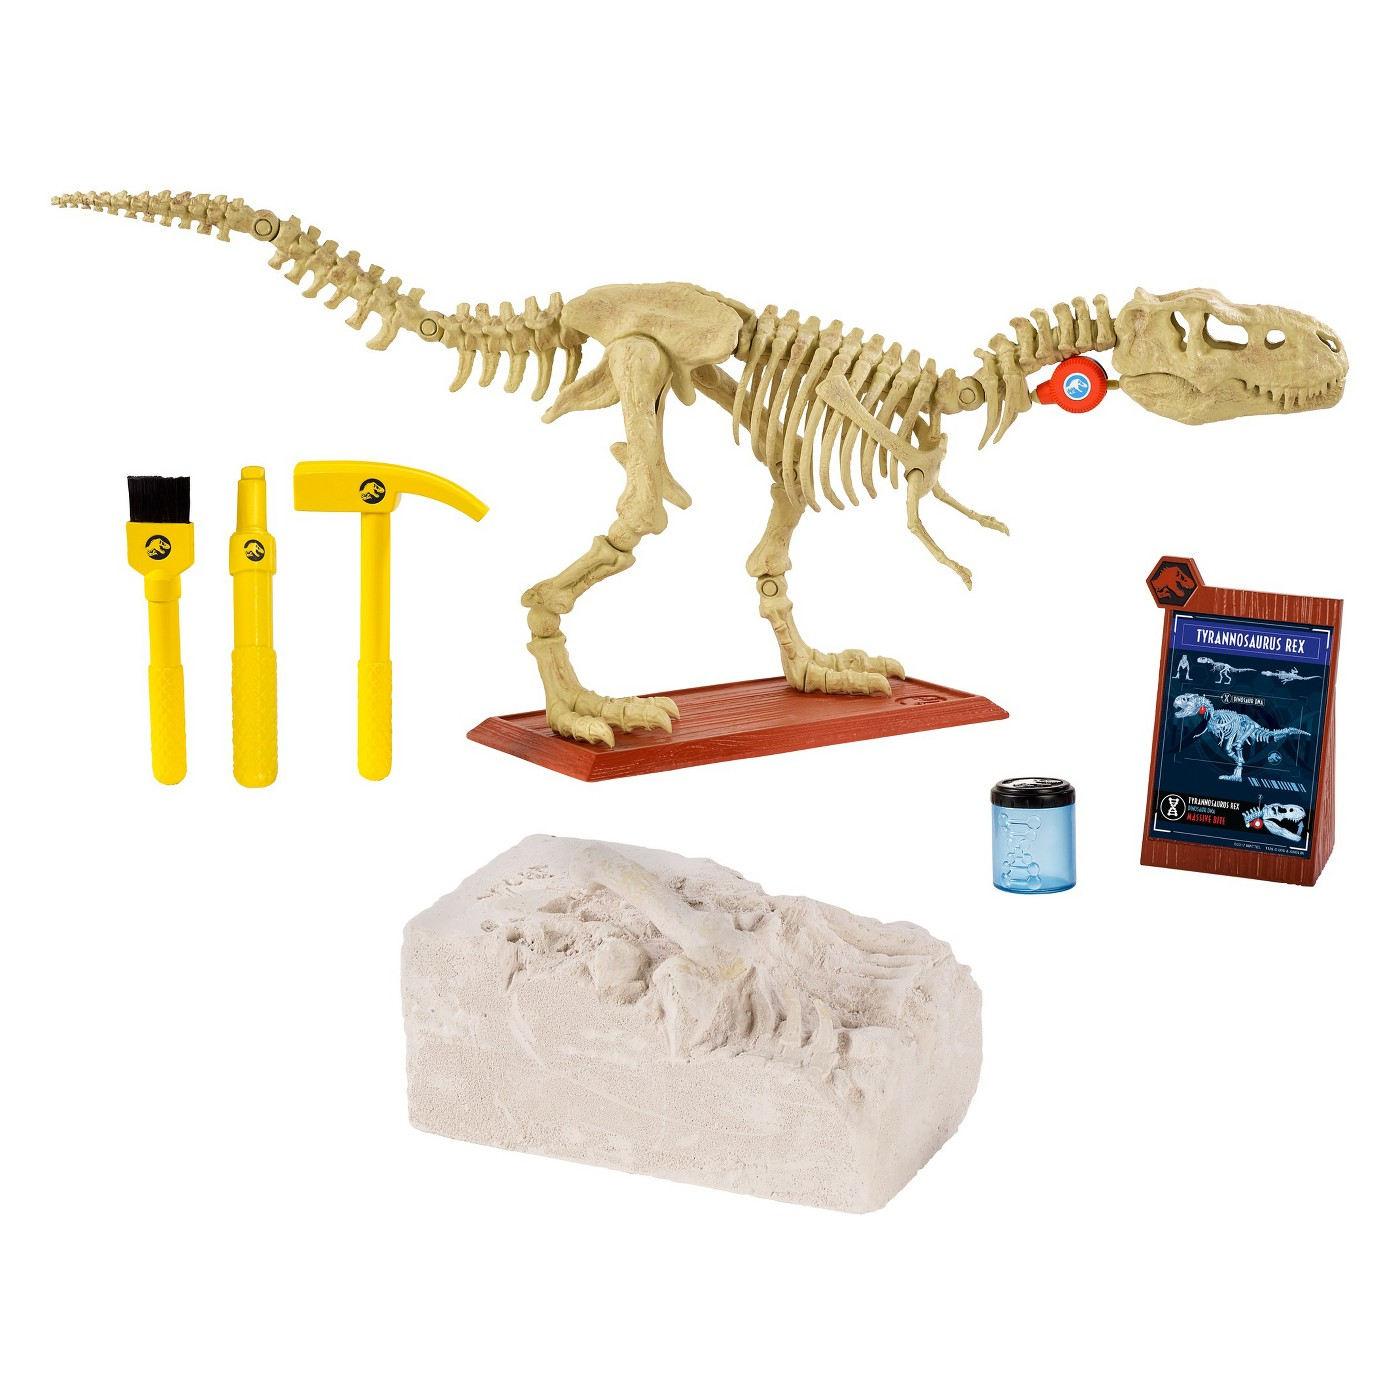 Jurassic World STEM Playleontology Kit - image 1 of 7